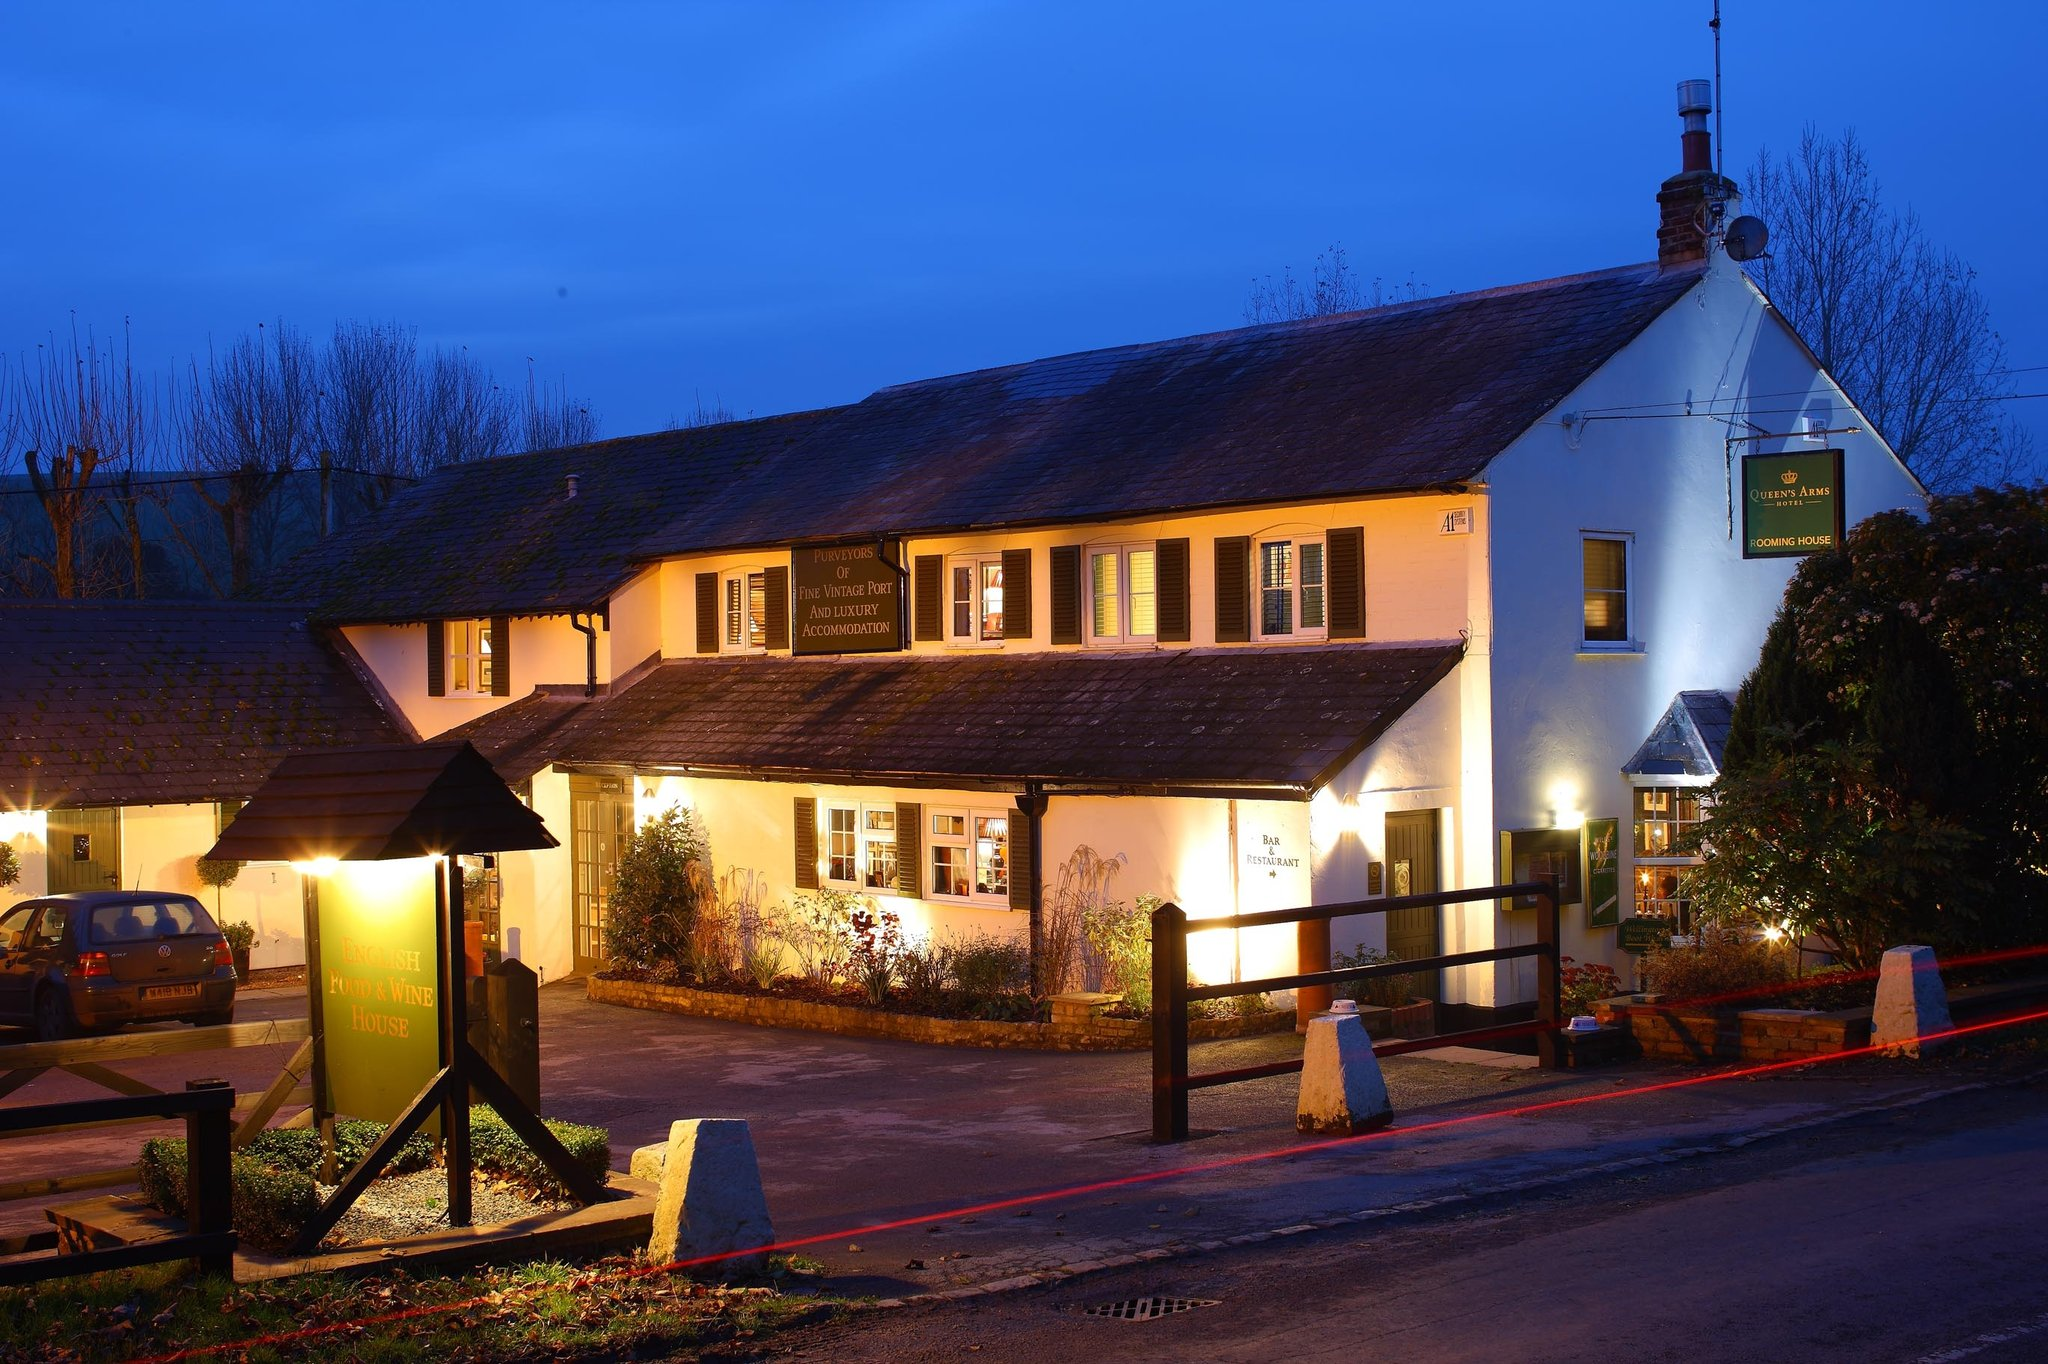 Queen's Arms Hotel